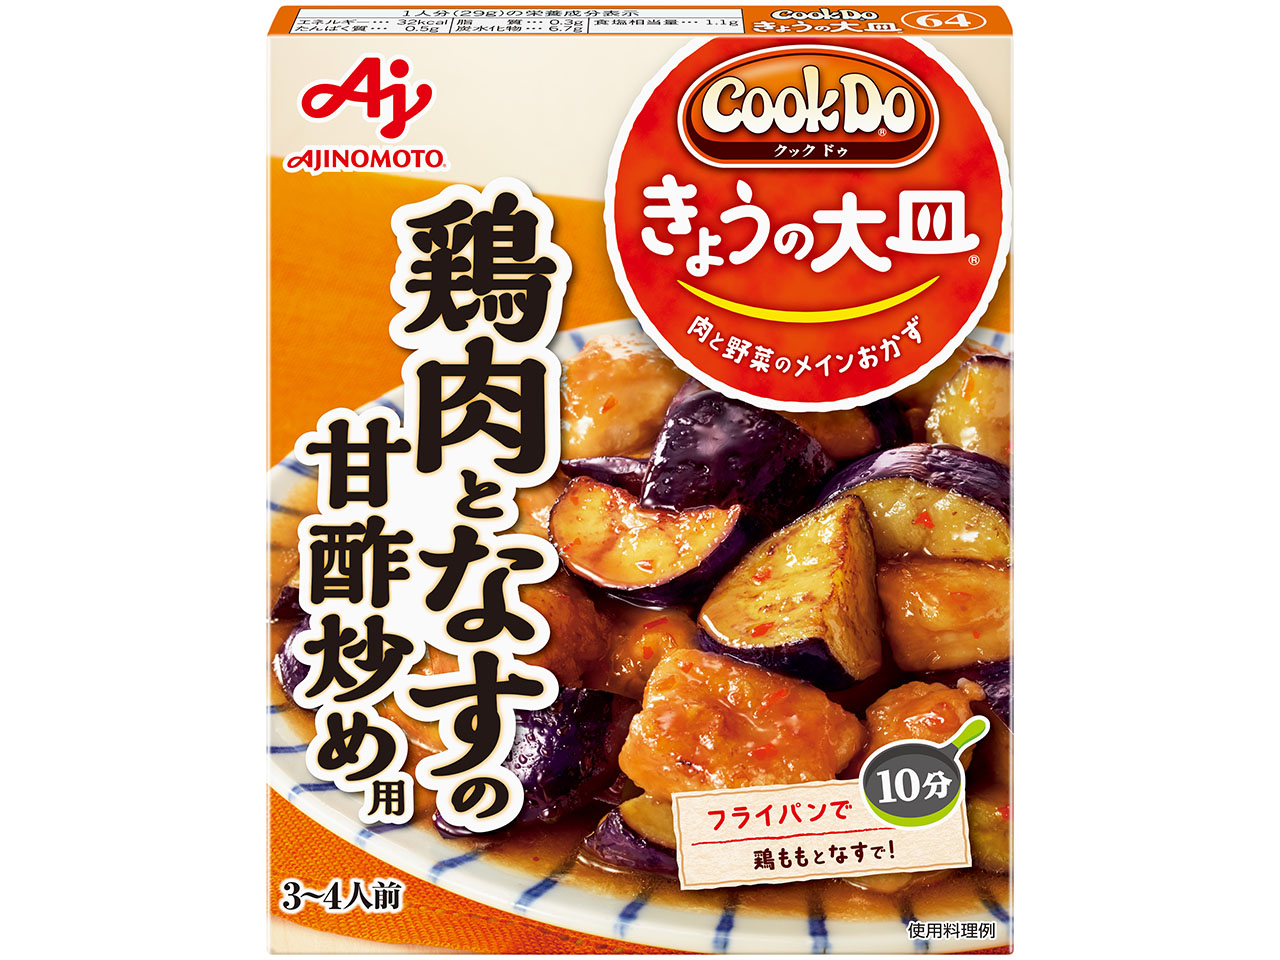 「Cook Doきょうの大皿」鶏肉となすの甘酢炒め用